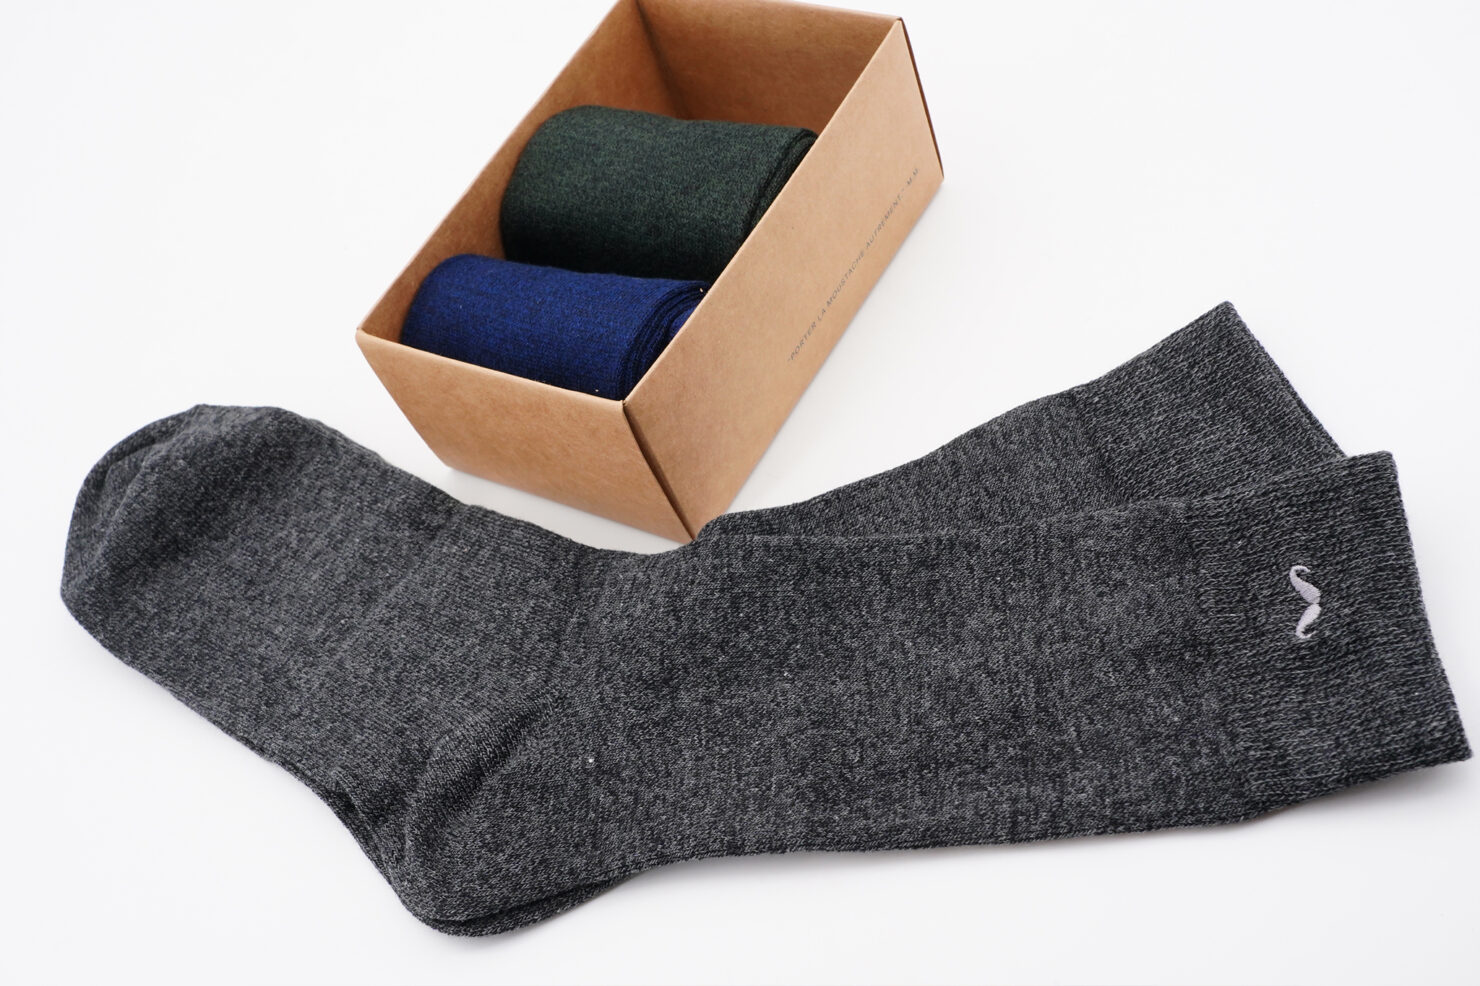 PACK OF 3 SOCKS - BLUE, GREY, GREEN - M. MOUSTACHE